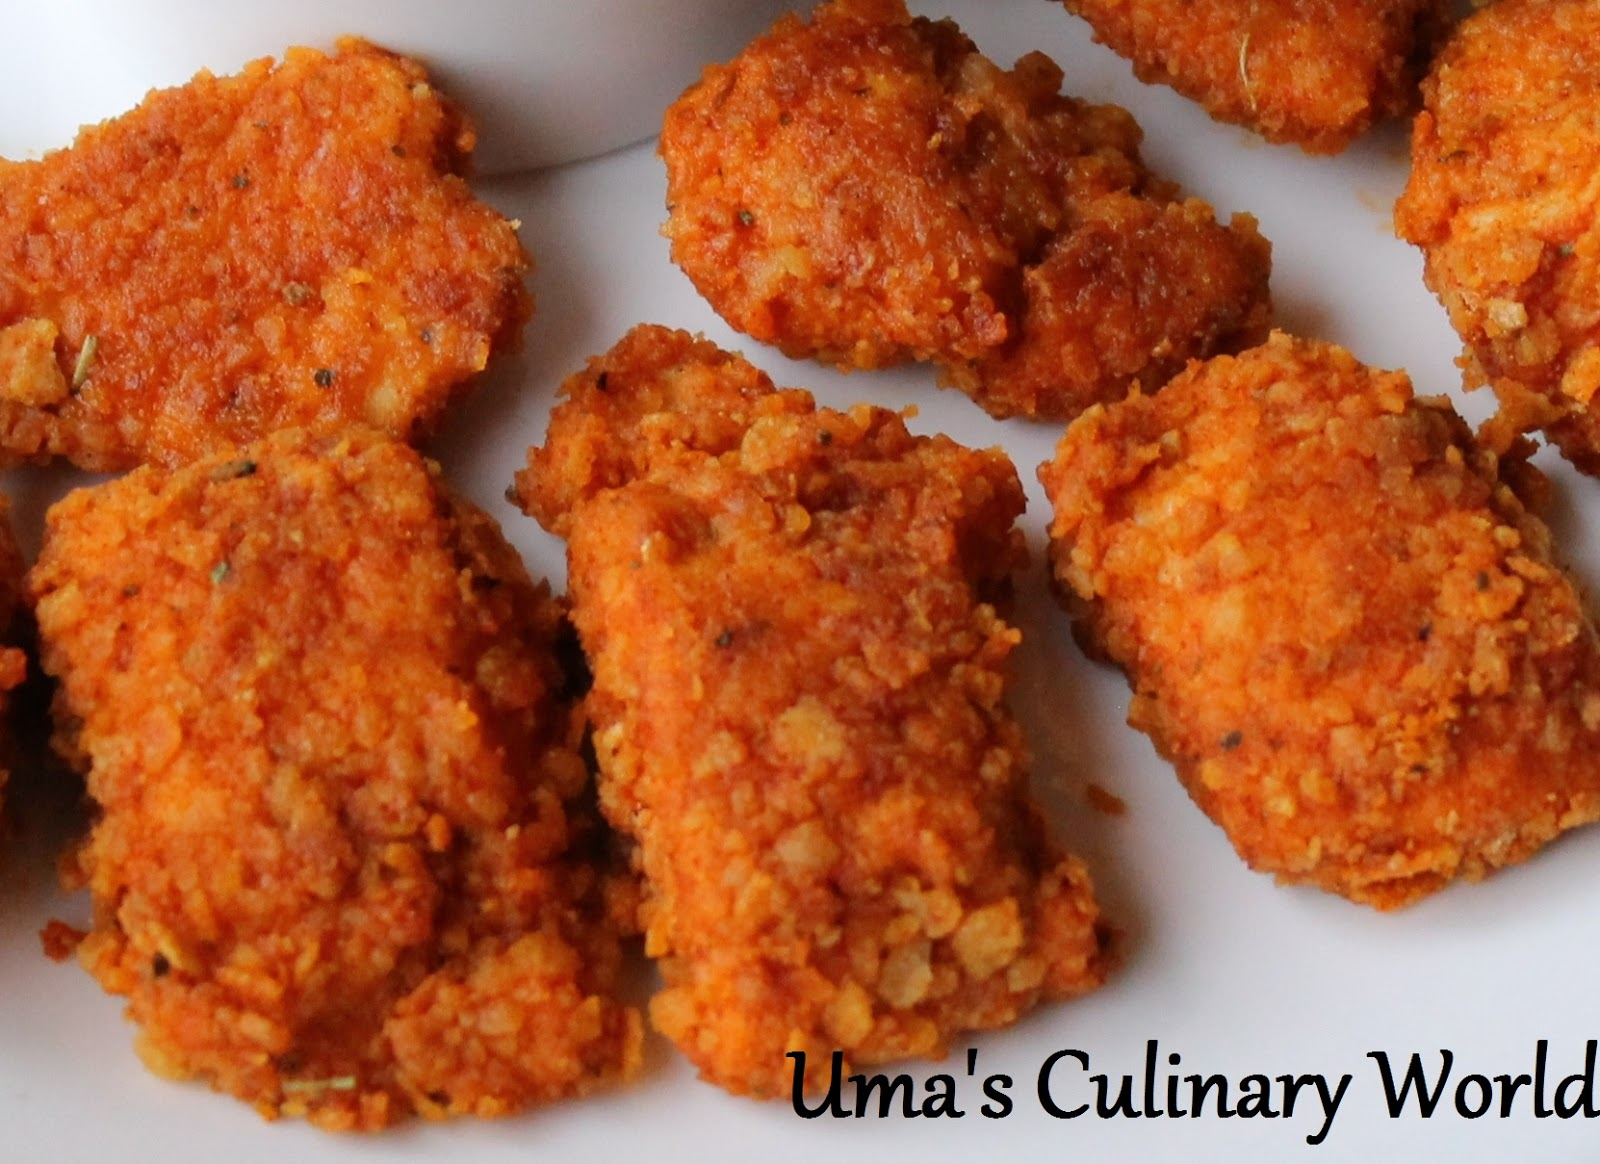 Uma's Culinary World: Baked Crunchy Chicken Nuggets